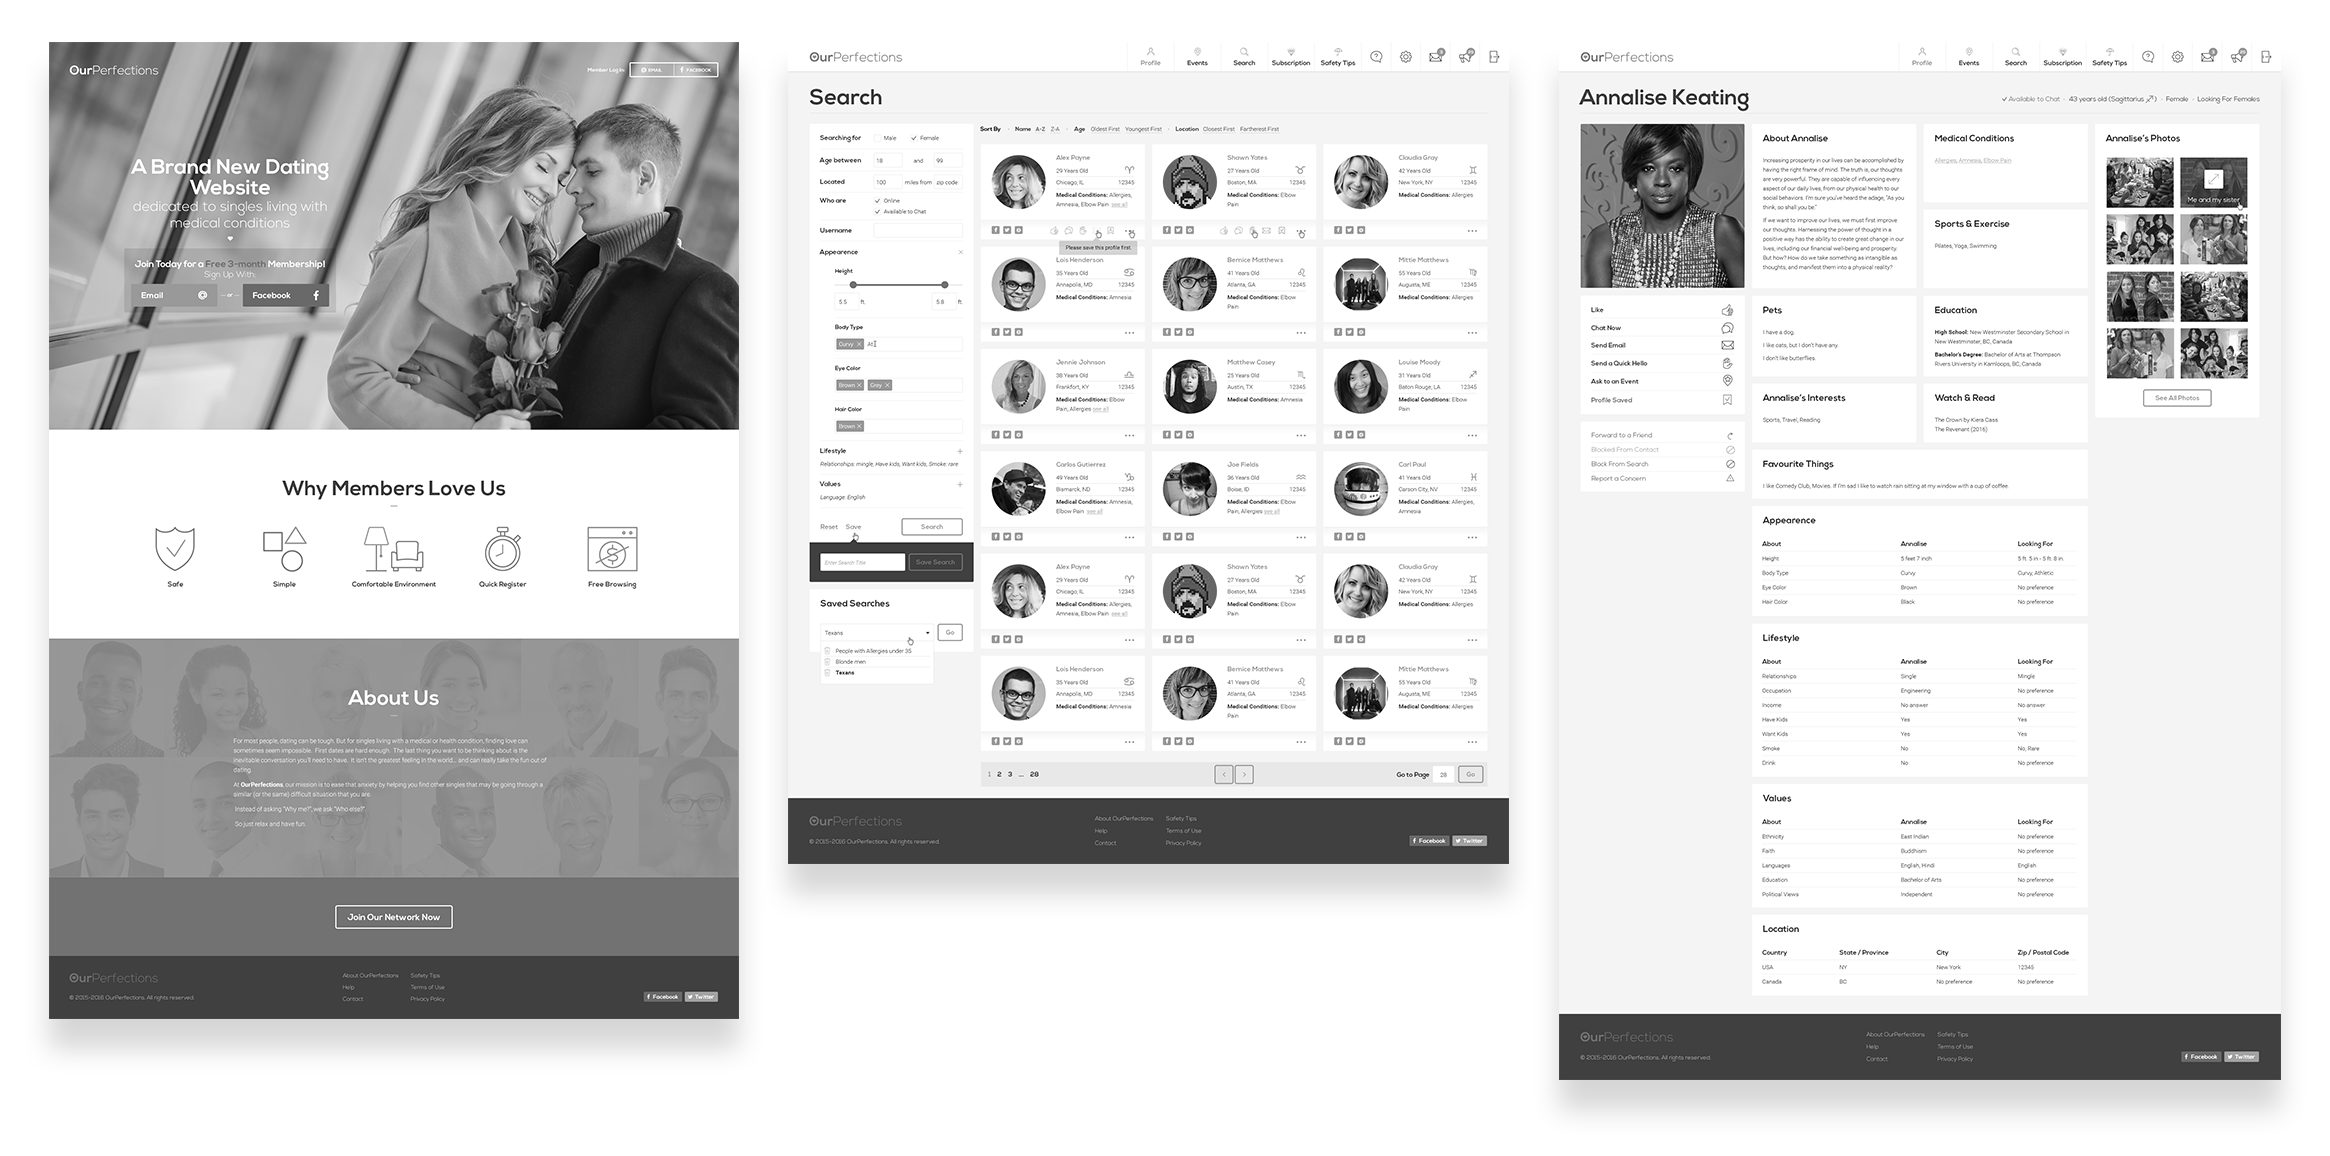 Accessibility assessment of a web interface with black and white filters